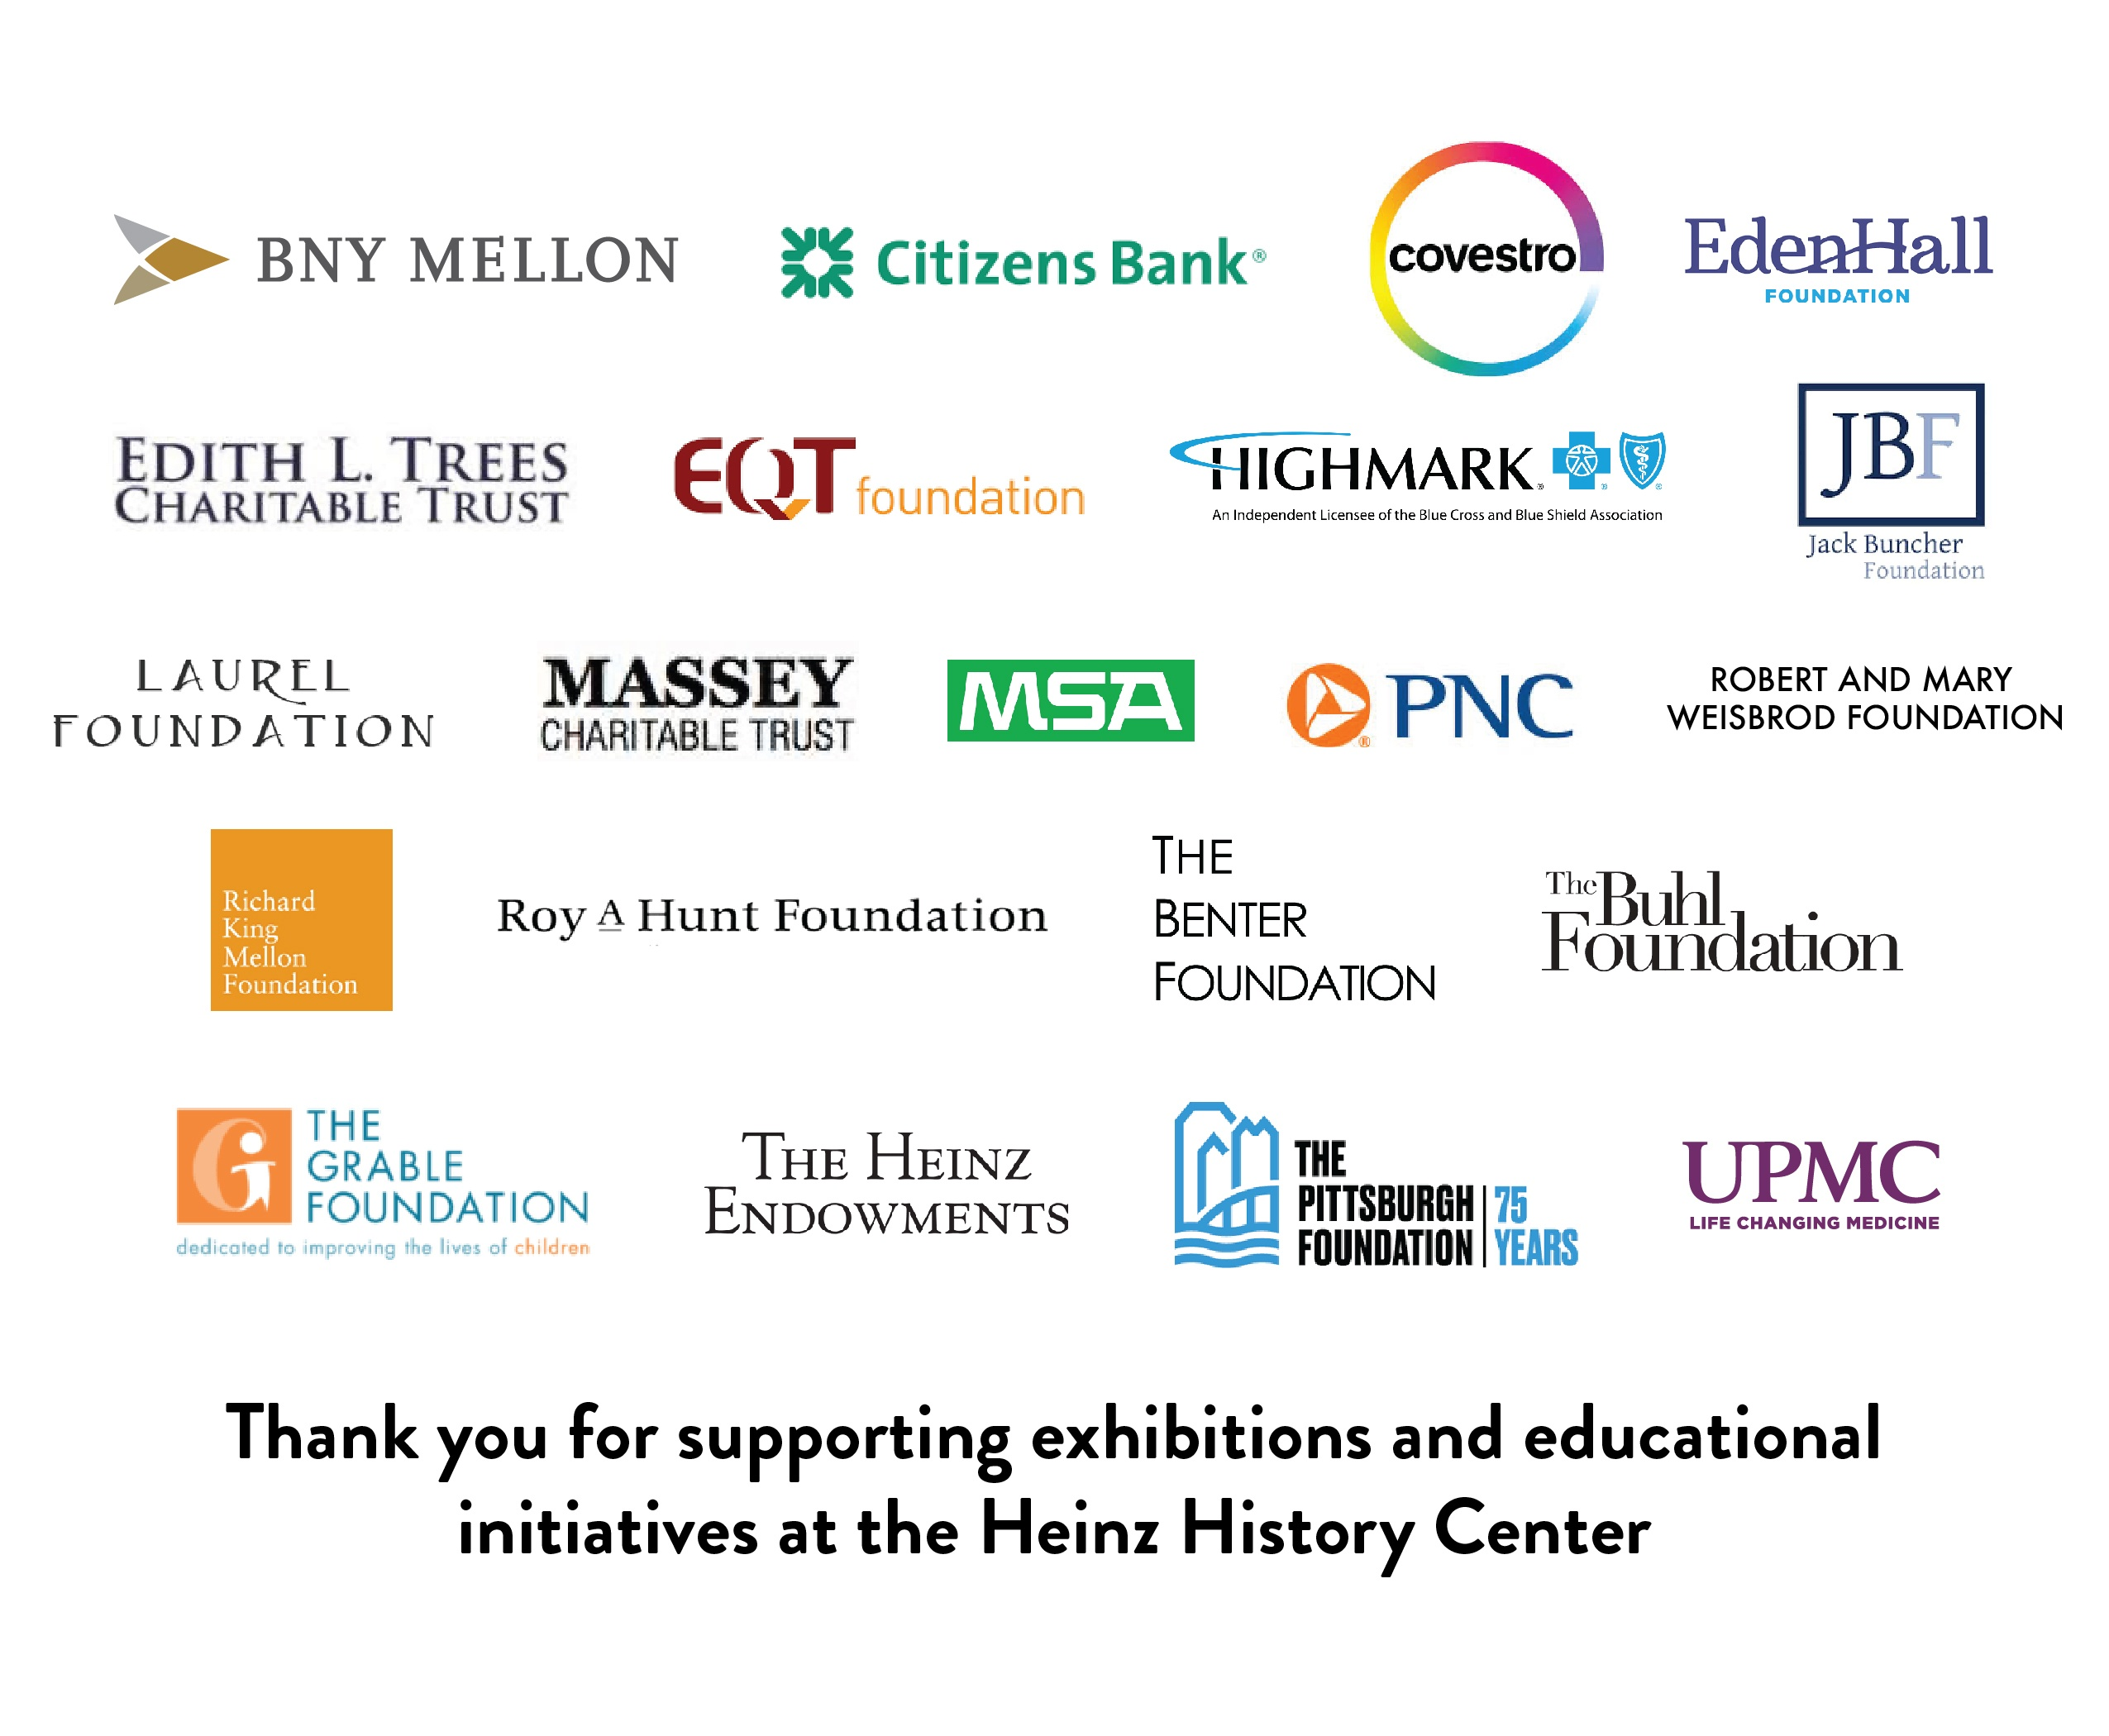 Thank you to the Heinz History Center sponsors